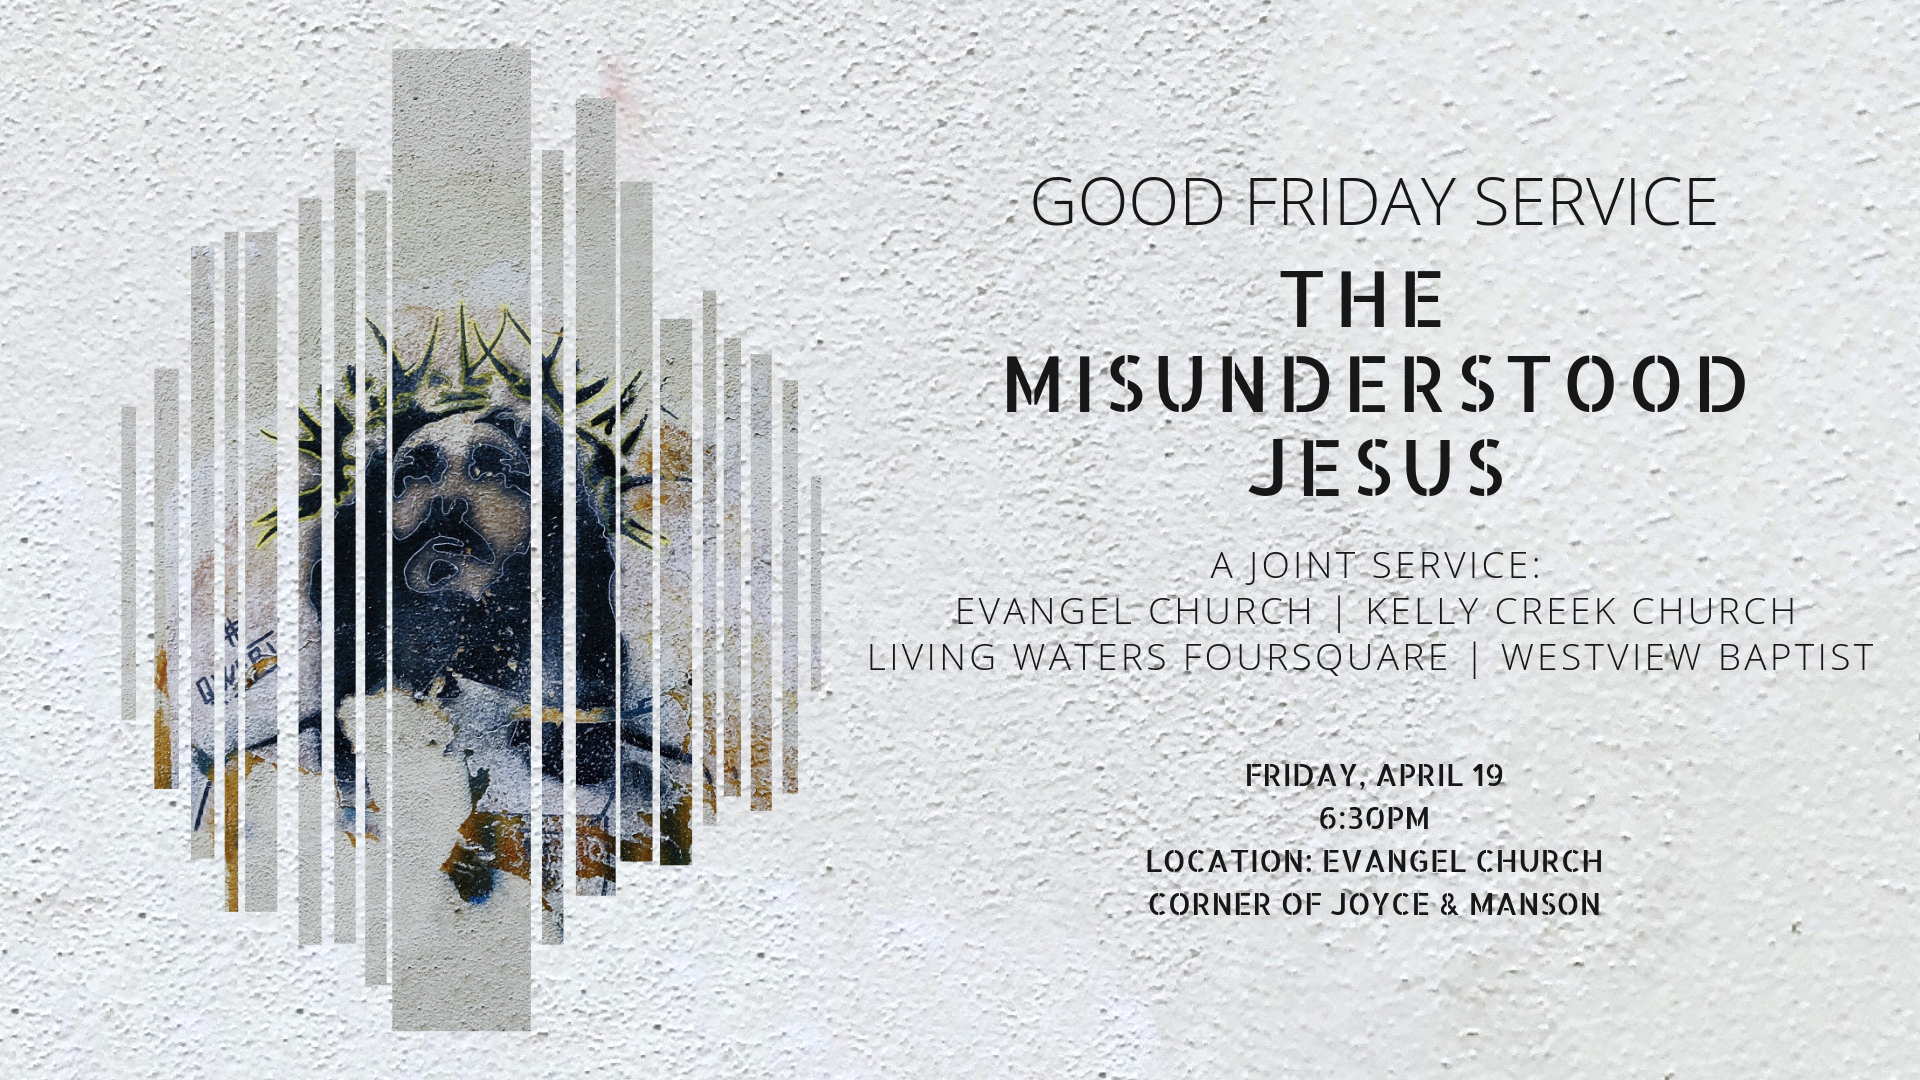 Copy of Good Friday Service 2019 FB Event.png